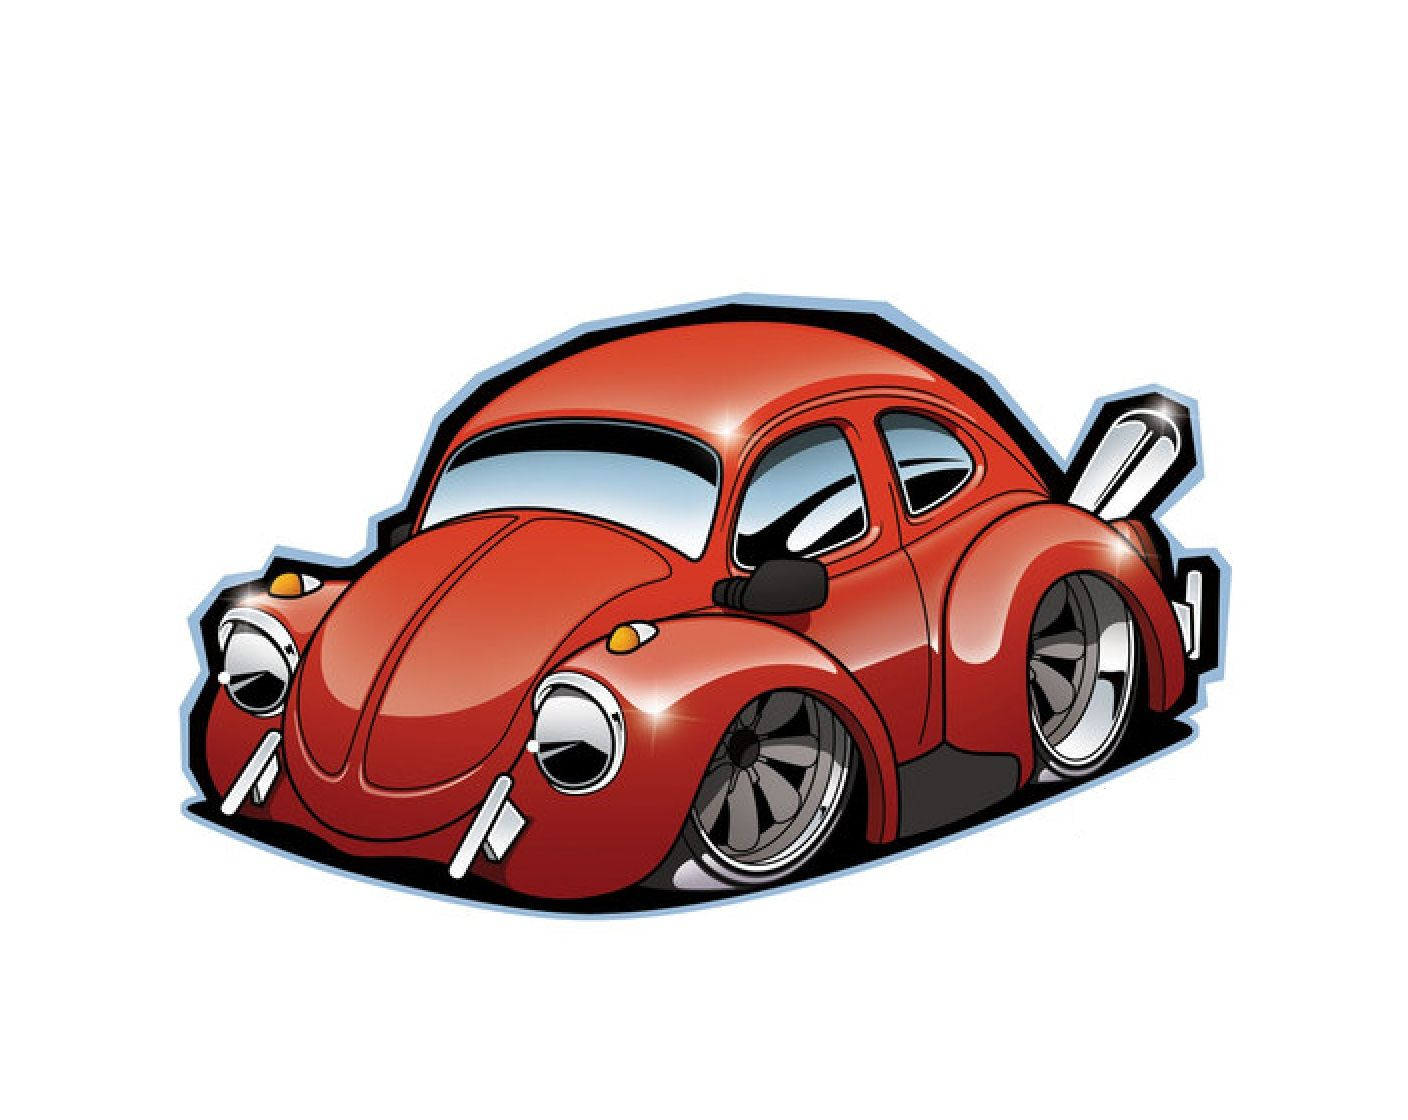 Pin by Kerry Sr on CAR/TRUCK ILLUSTRATIONS | Pinterest | Cars ...